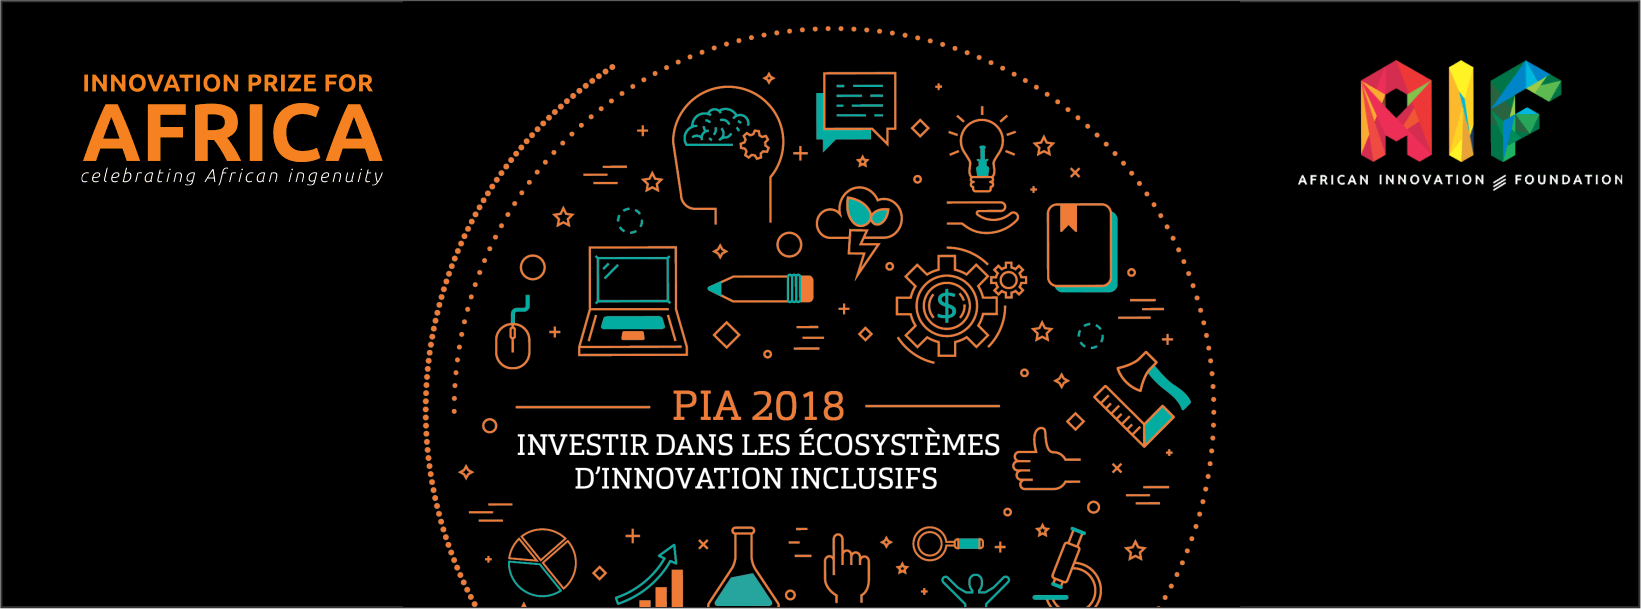 Prix de l'Innovation africaine 2018